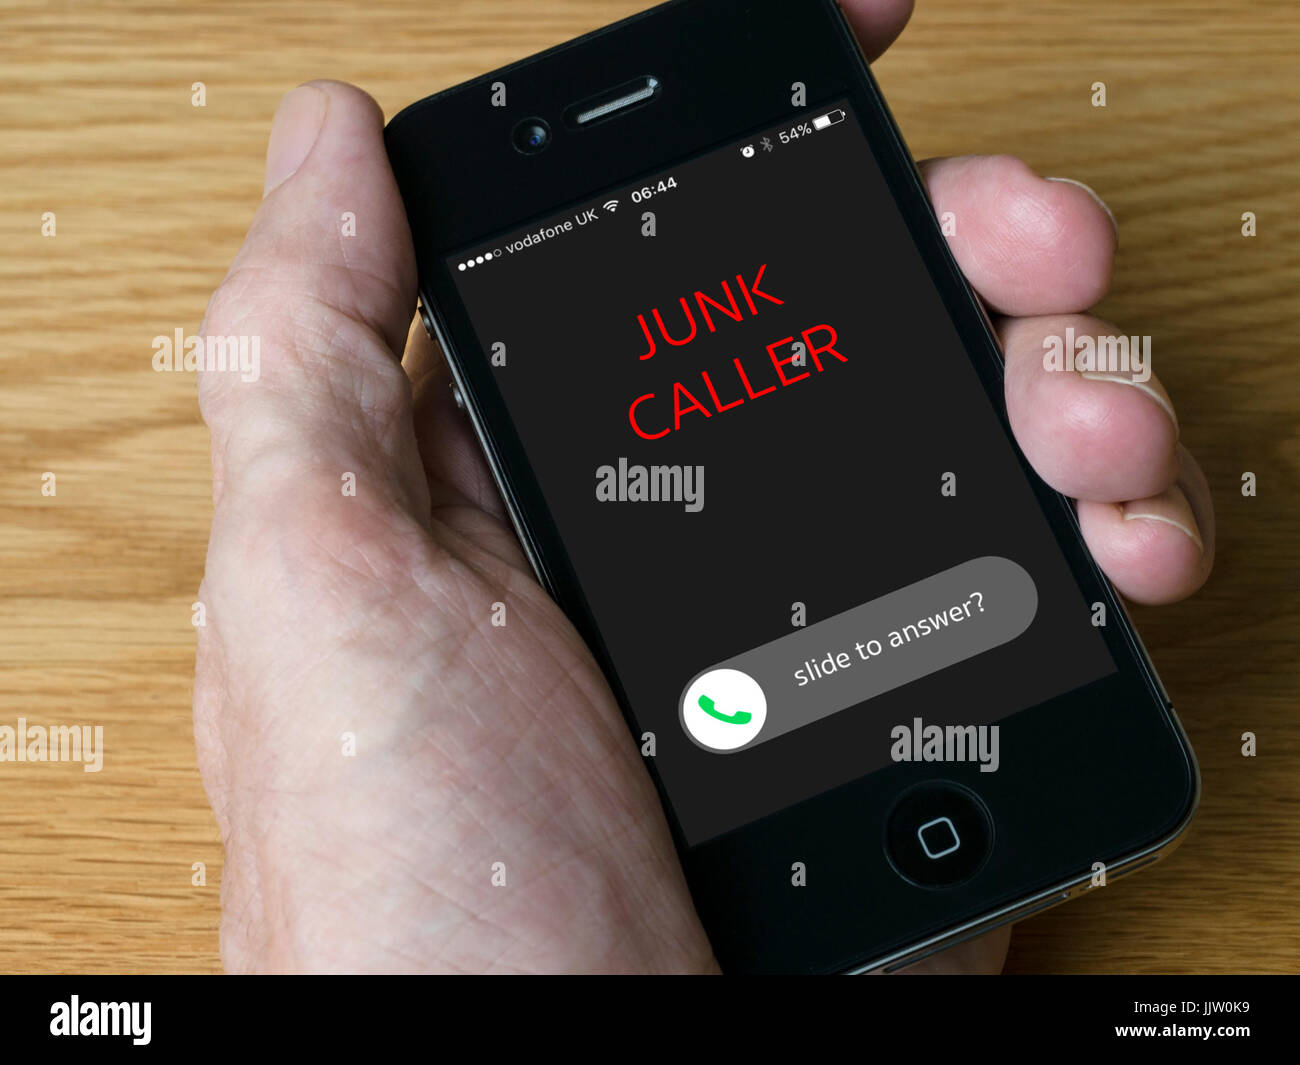 Concept image - Incoming nuisance junk phone call on handheld iPhone mobile phone display - Stock Image